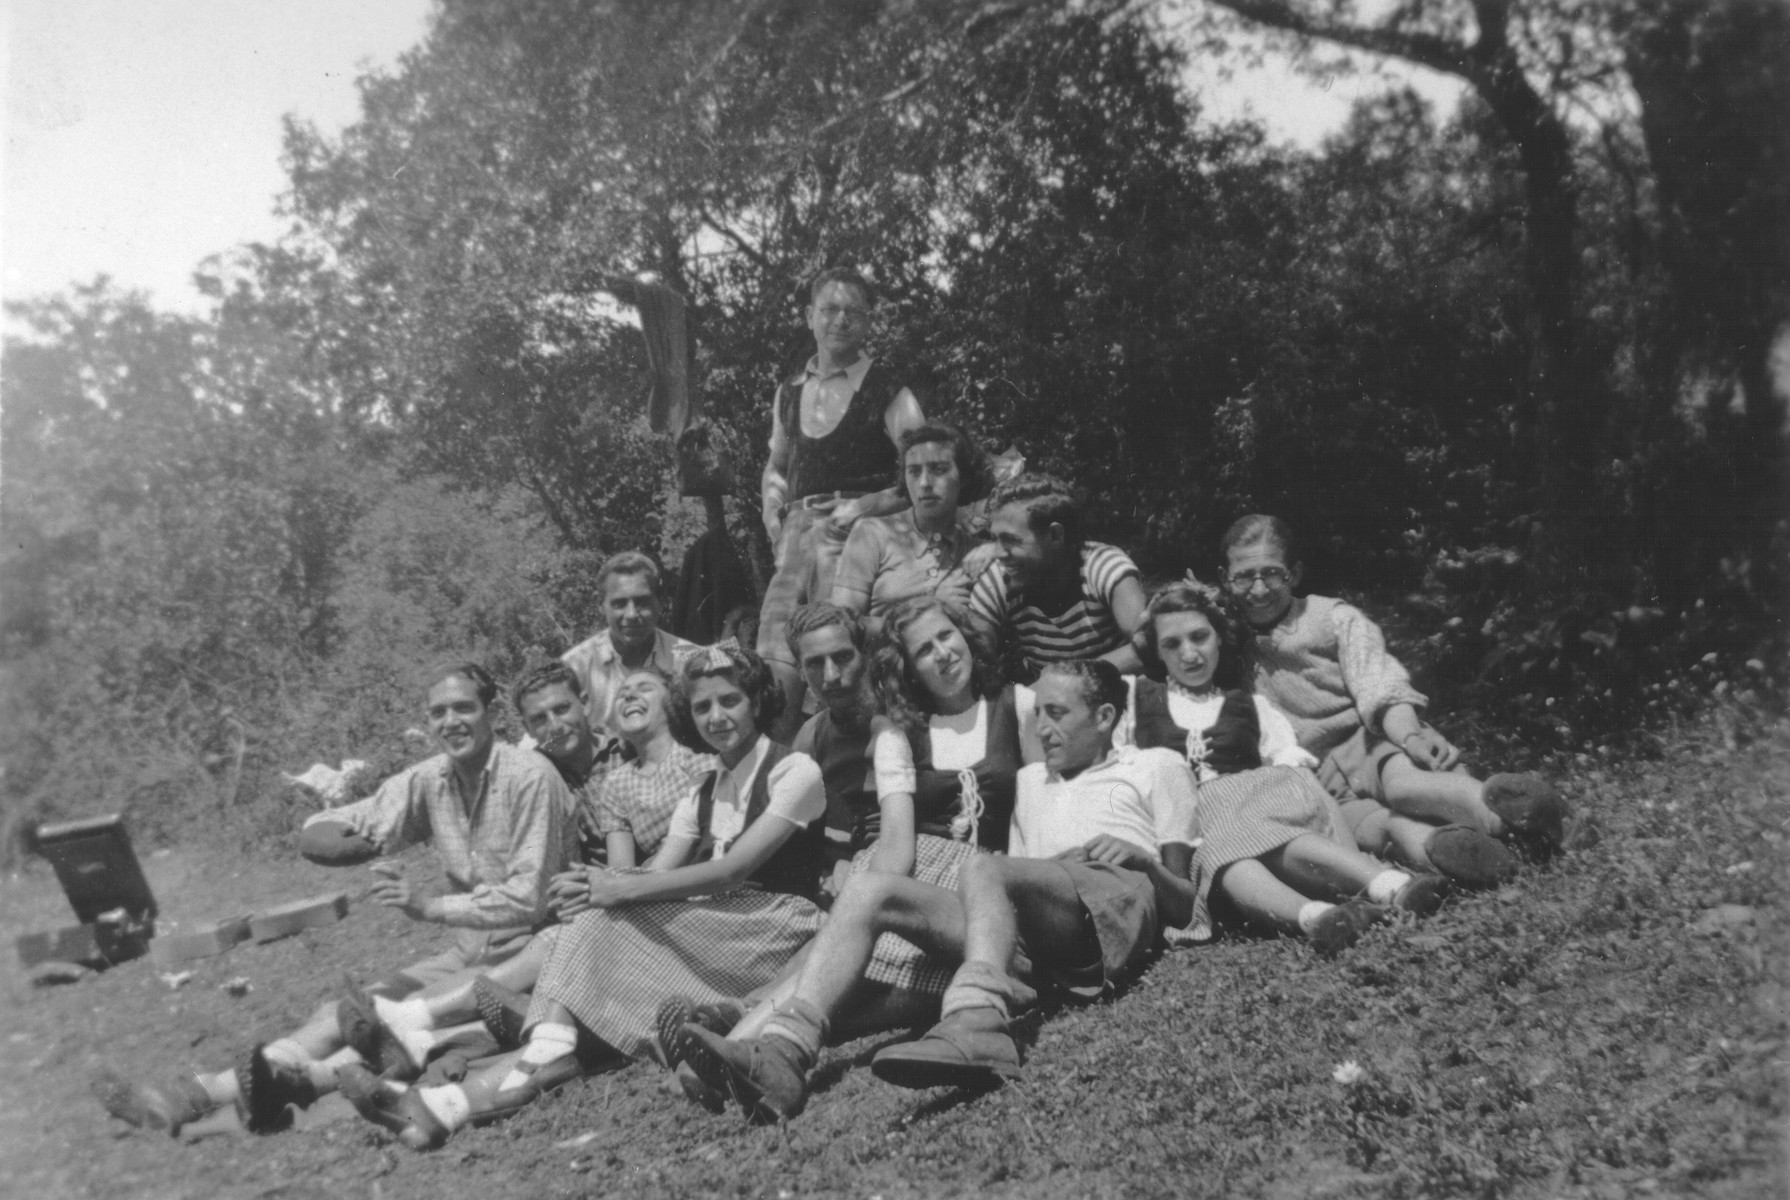 Group portrait of members of a Betar Zionist youth group on an outing.  Among those pictured is Jaco Beraha.